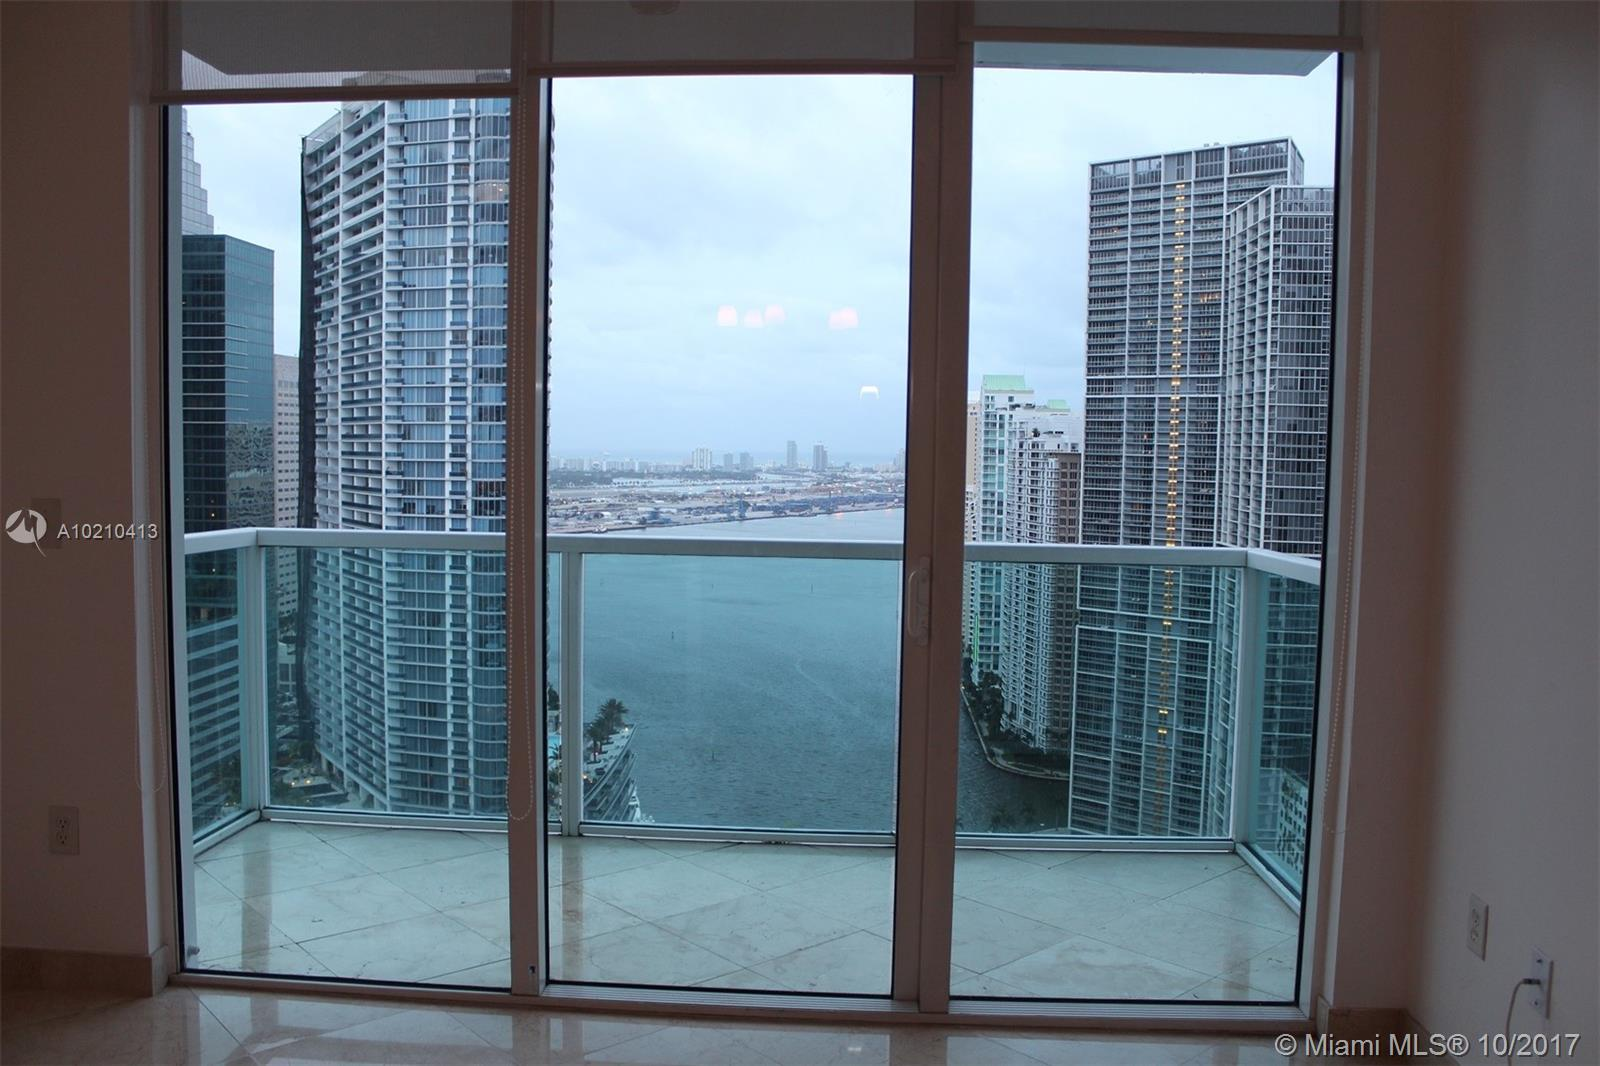 Brickell on the River North image #28